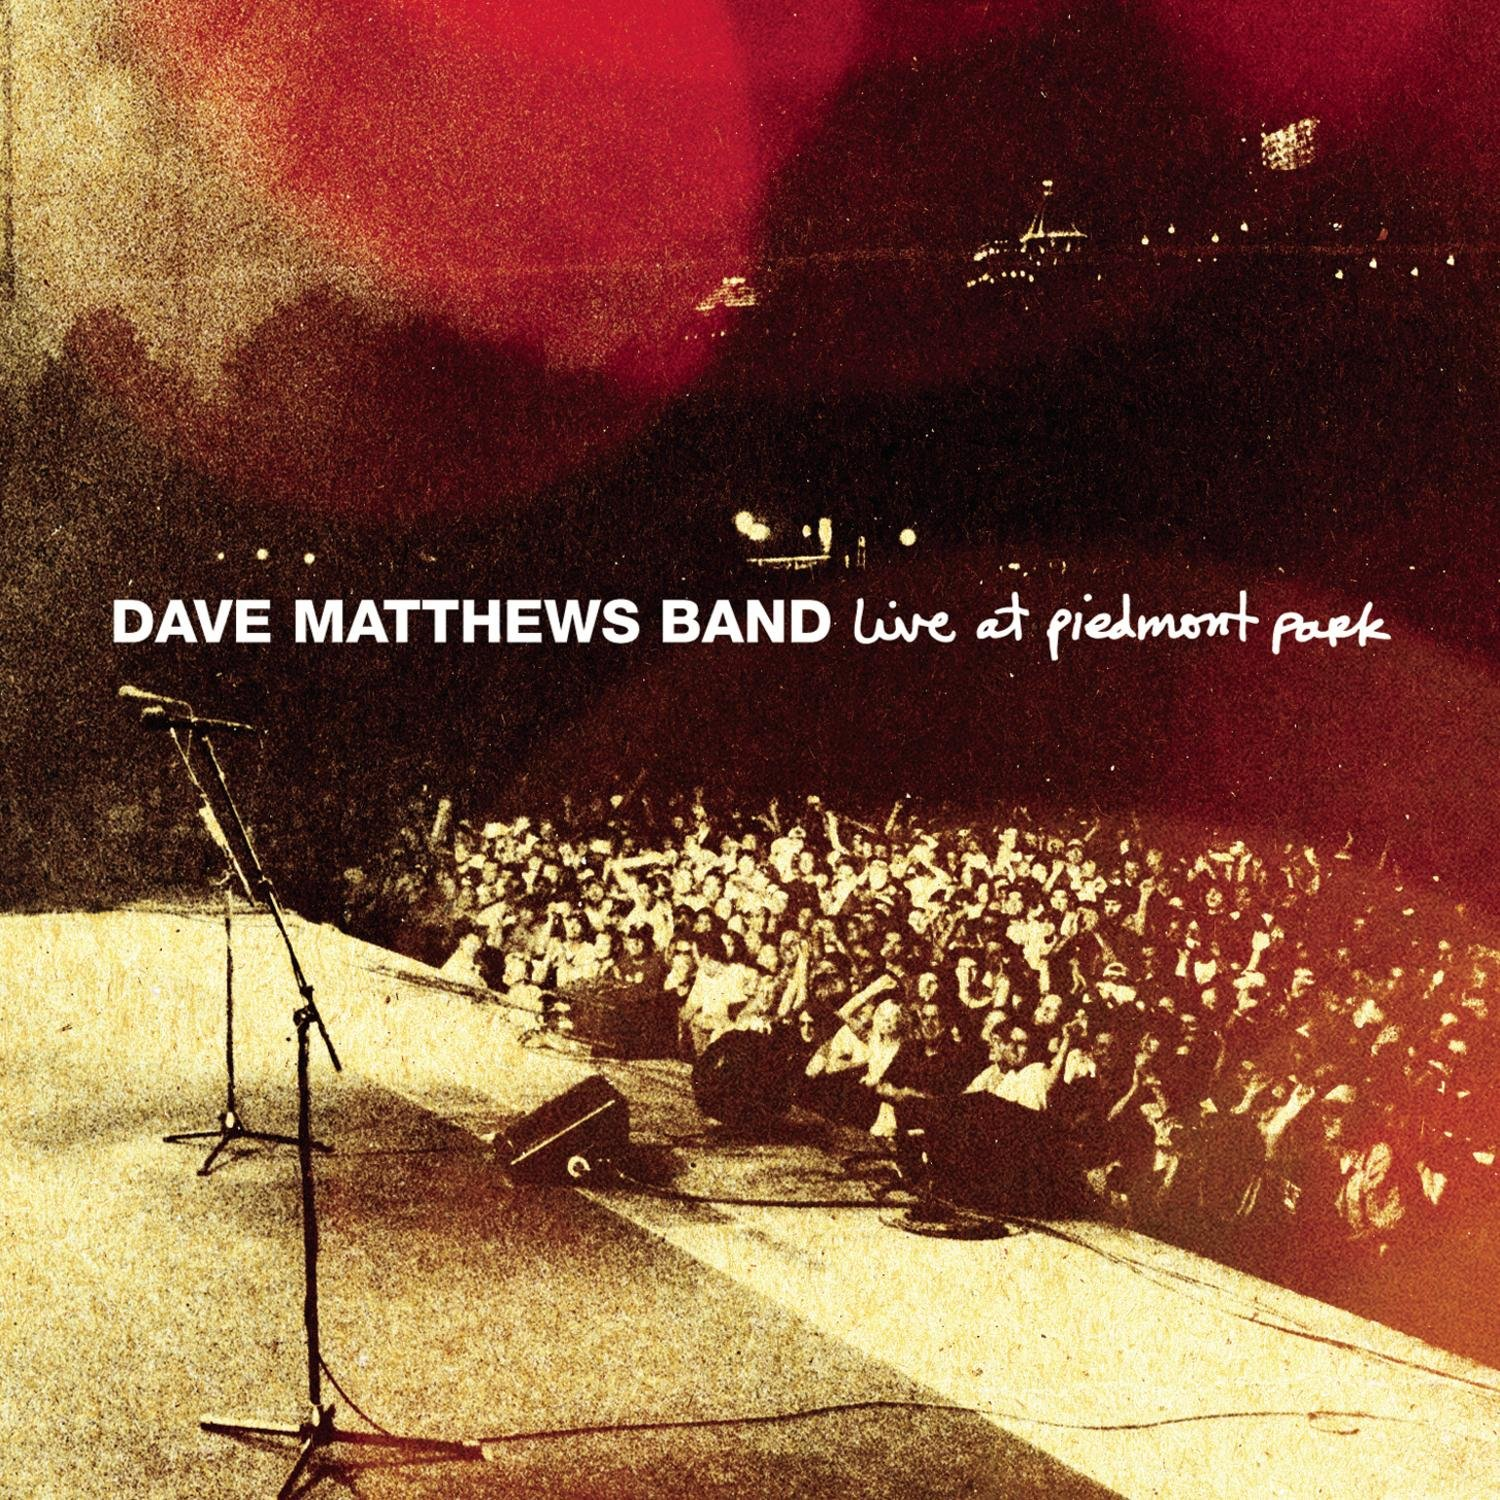 Dave Matthews Band - Live At Piedmont Park - Amazon.com Music